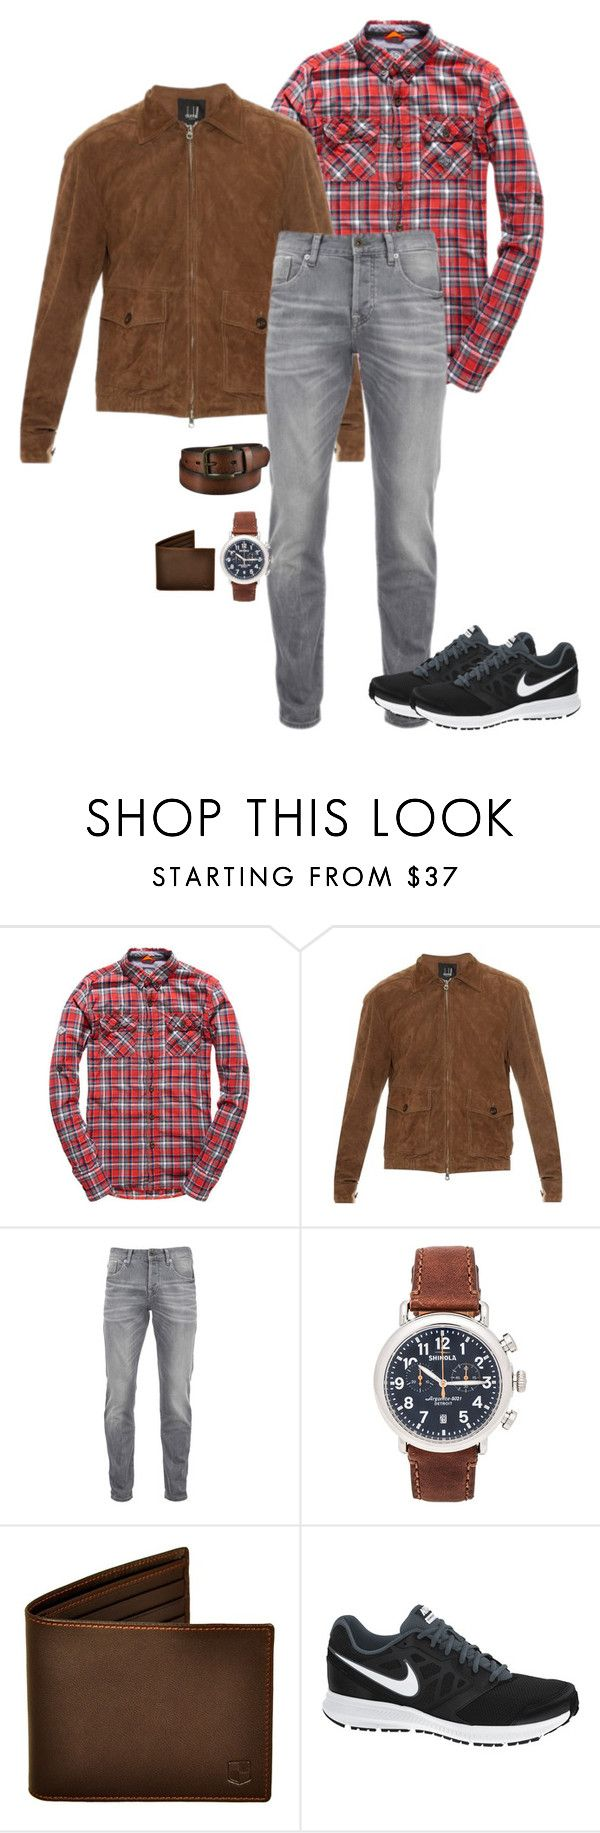 """""""?????????????????"""" by bumfuzzled2 ❤ liked on Polyvore featuring Superdry, Dunhill, Scotch & Soda, Shinola, NIKE, Uniqlo, men's fashion and menswear"""